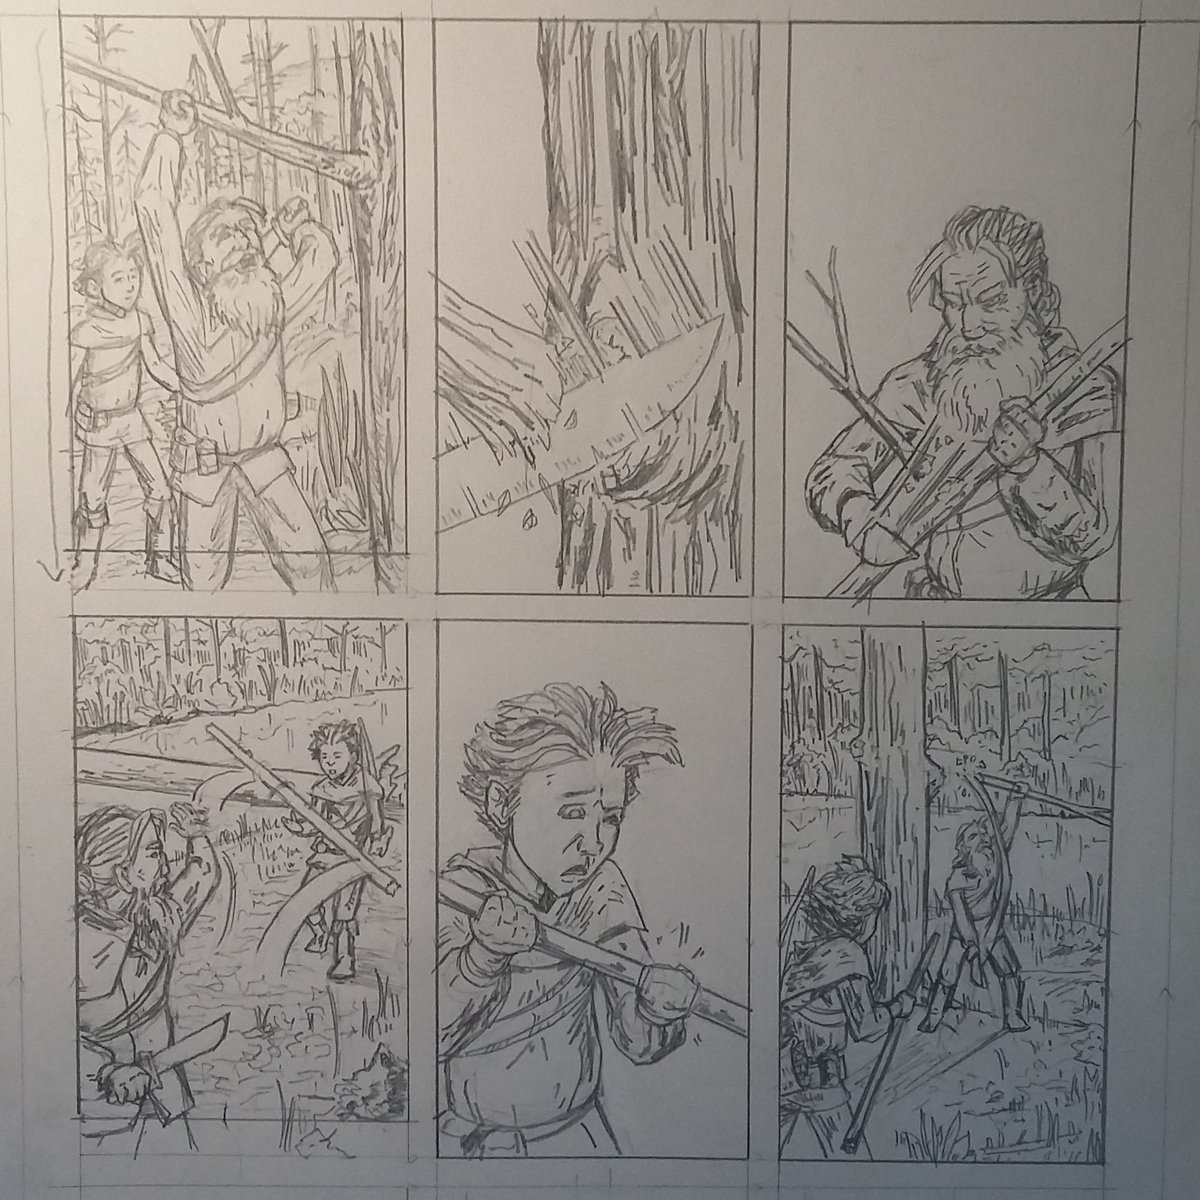 another page on the board. this one has been a bit of a wrestling match, and minus a couple cropping issues i feel pretty good about how it's coming together.  #sequentialart #visualstorytelling #makingcomics #comicbookpage #historicalfantasy #penciling<br>http://pic.twitter.com/sEr4cQROn4